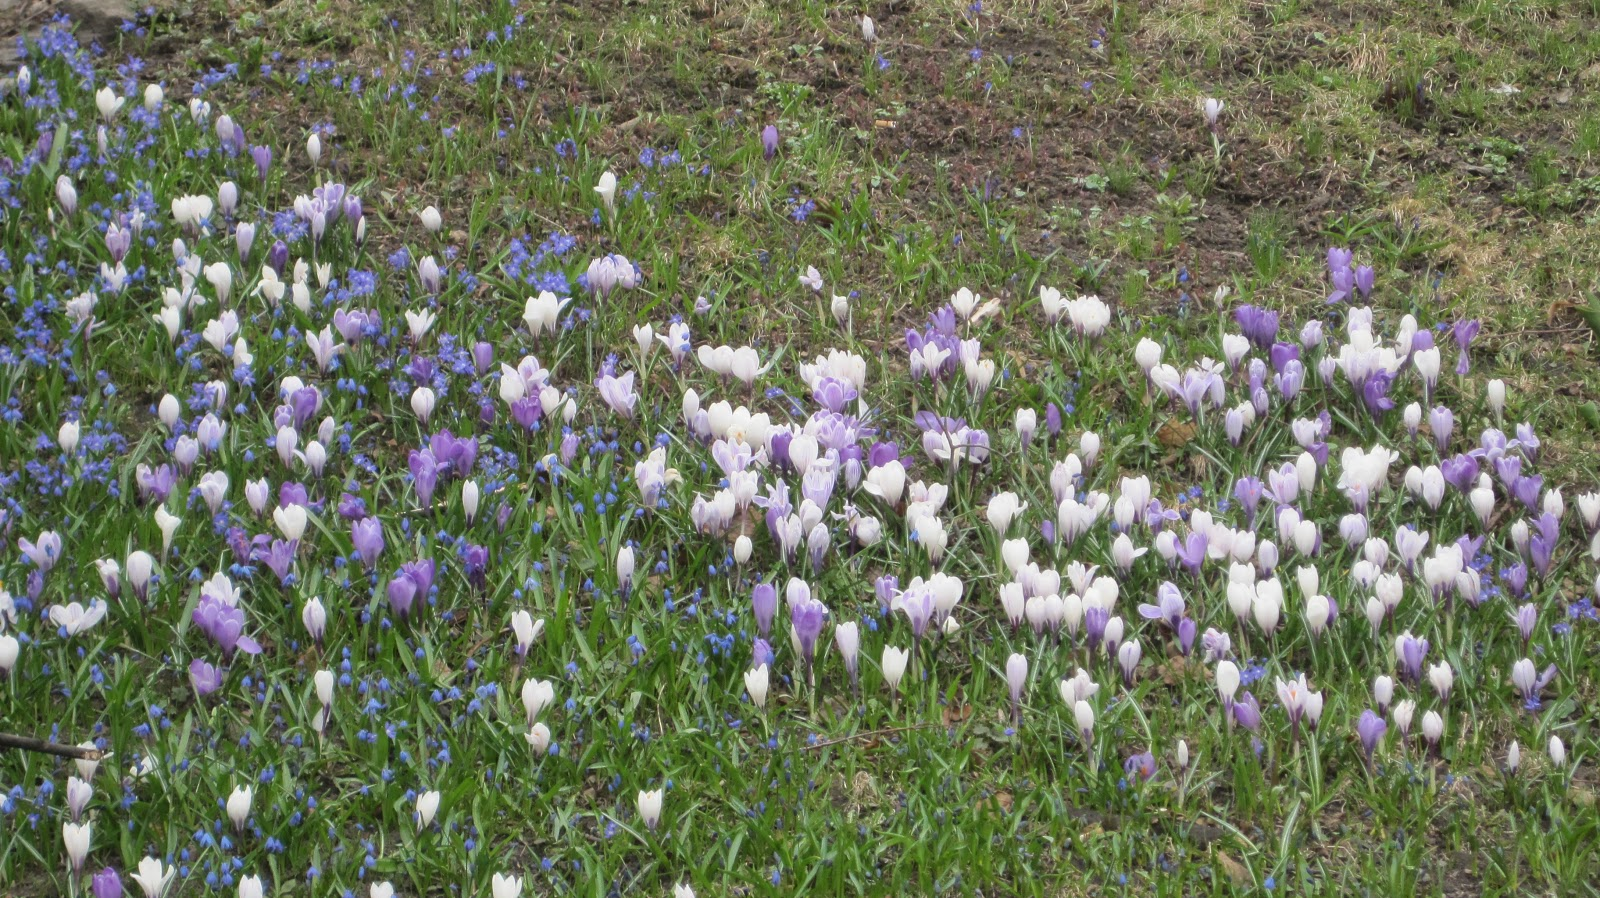 ed89915aa8ee It s like the ground can t quite let go of winter yet. But the carnival of  color that the crocuses and wild blue flowers (wish I knew what these were  ...